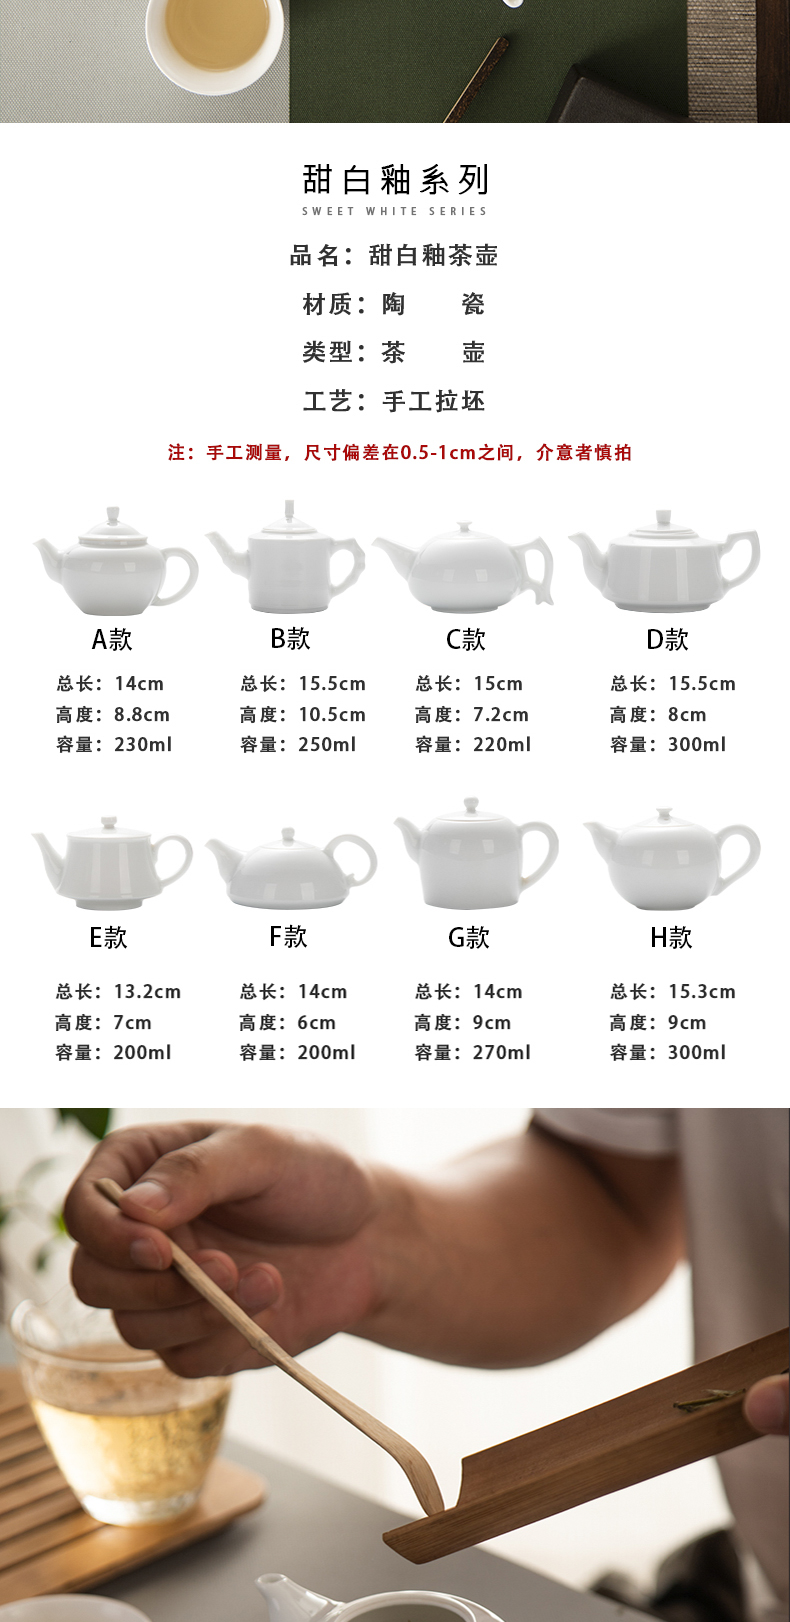 Sweet white glaze high white porcelain household jingdezhen ceramic teapot kung fu teapot size belt thickening the single pot